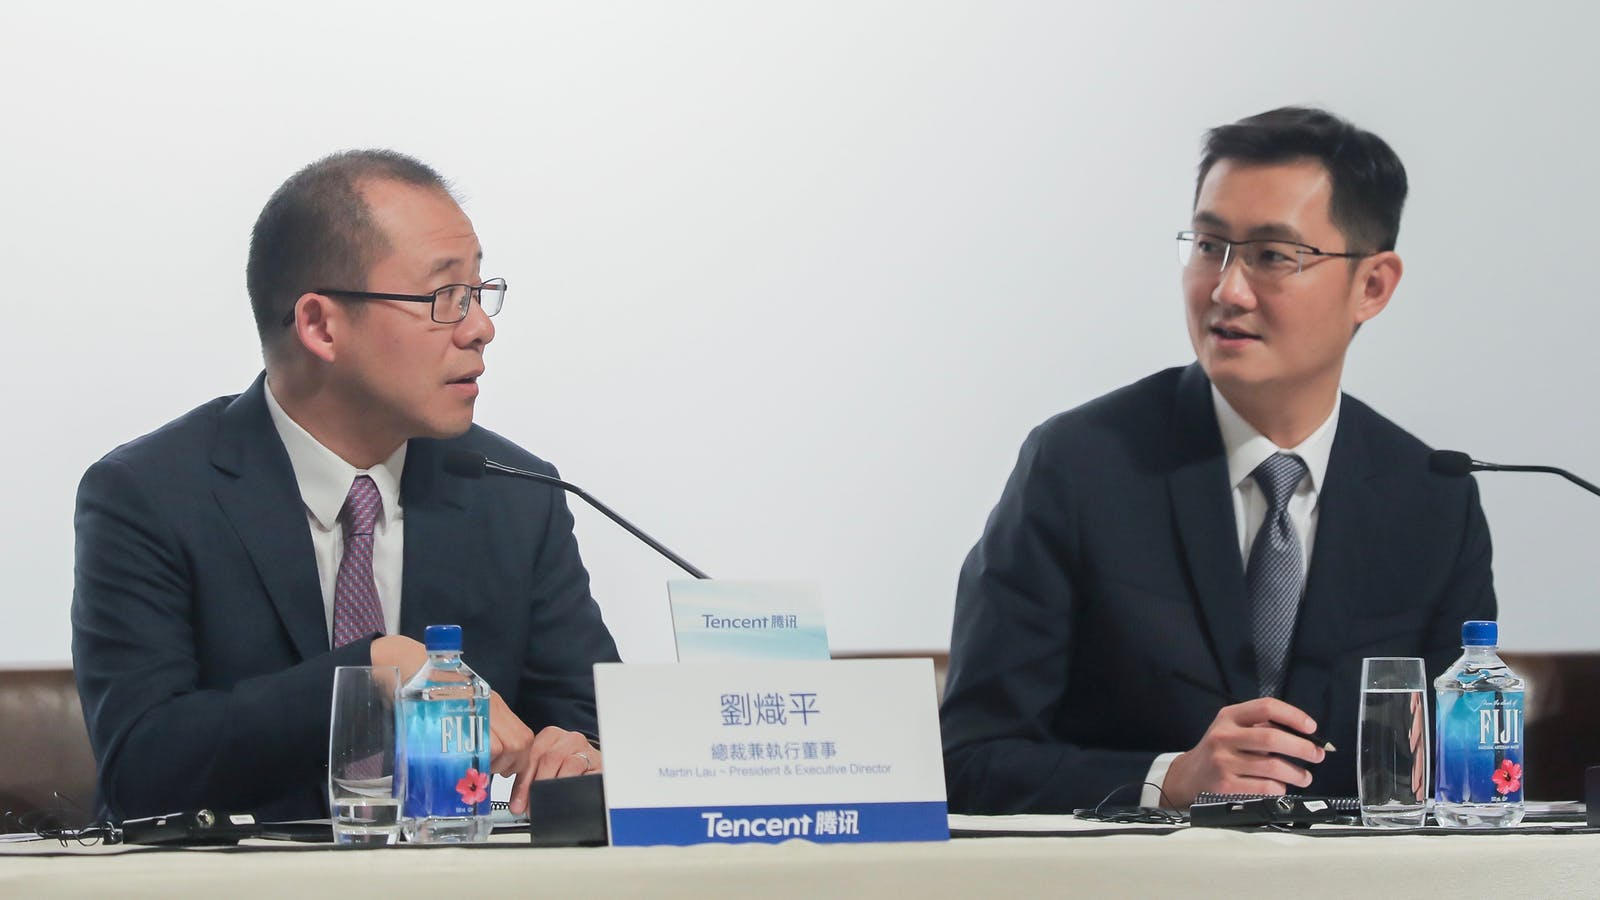 Tencent president Martin Lau and CEO Ma Huateng. Photo by Bloomberg.